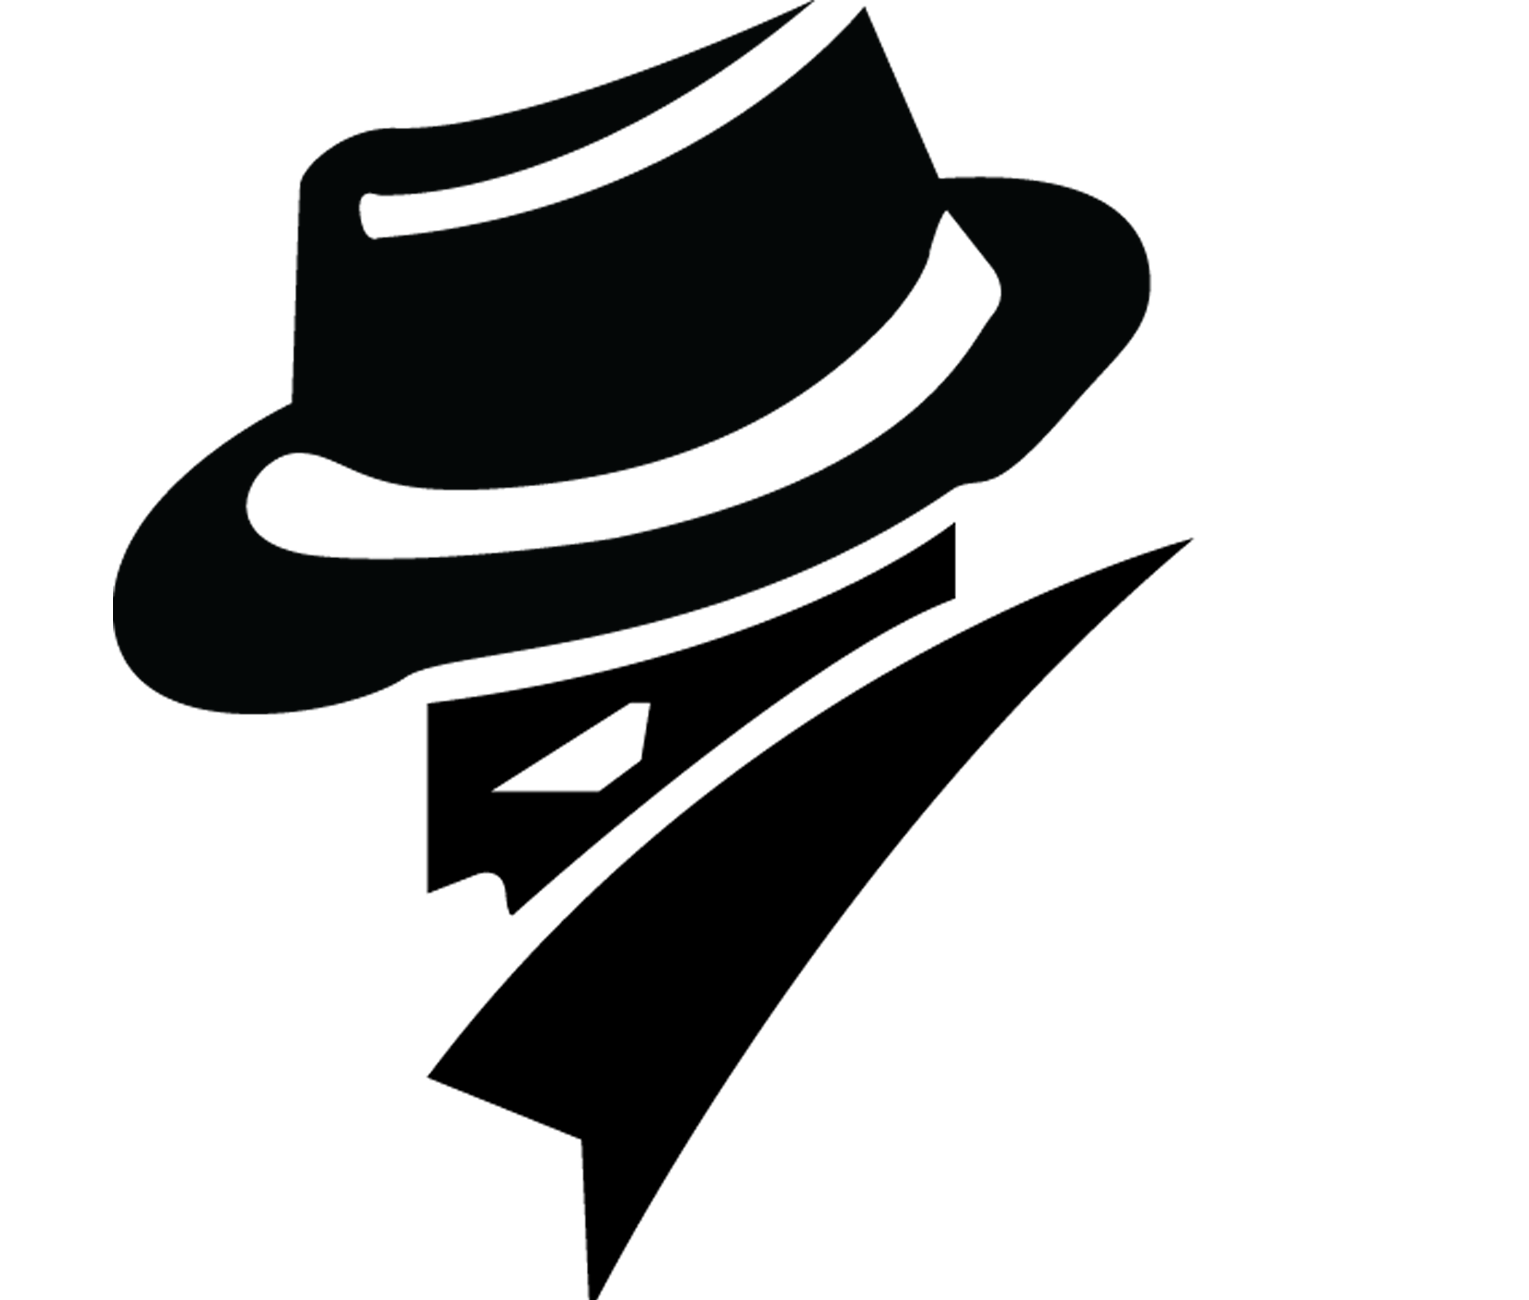 Detective clipart symbol. Spy tags detectives agency